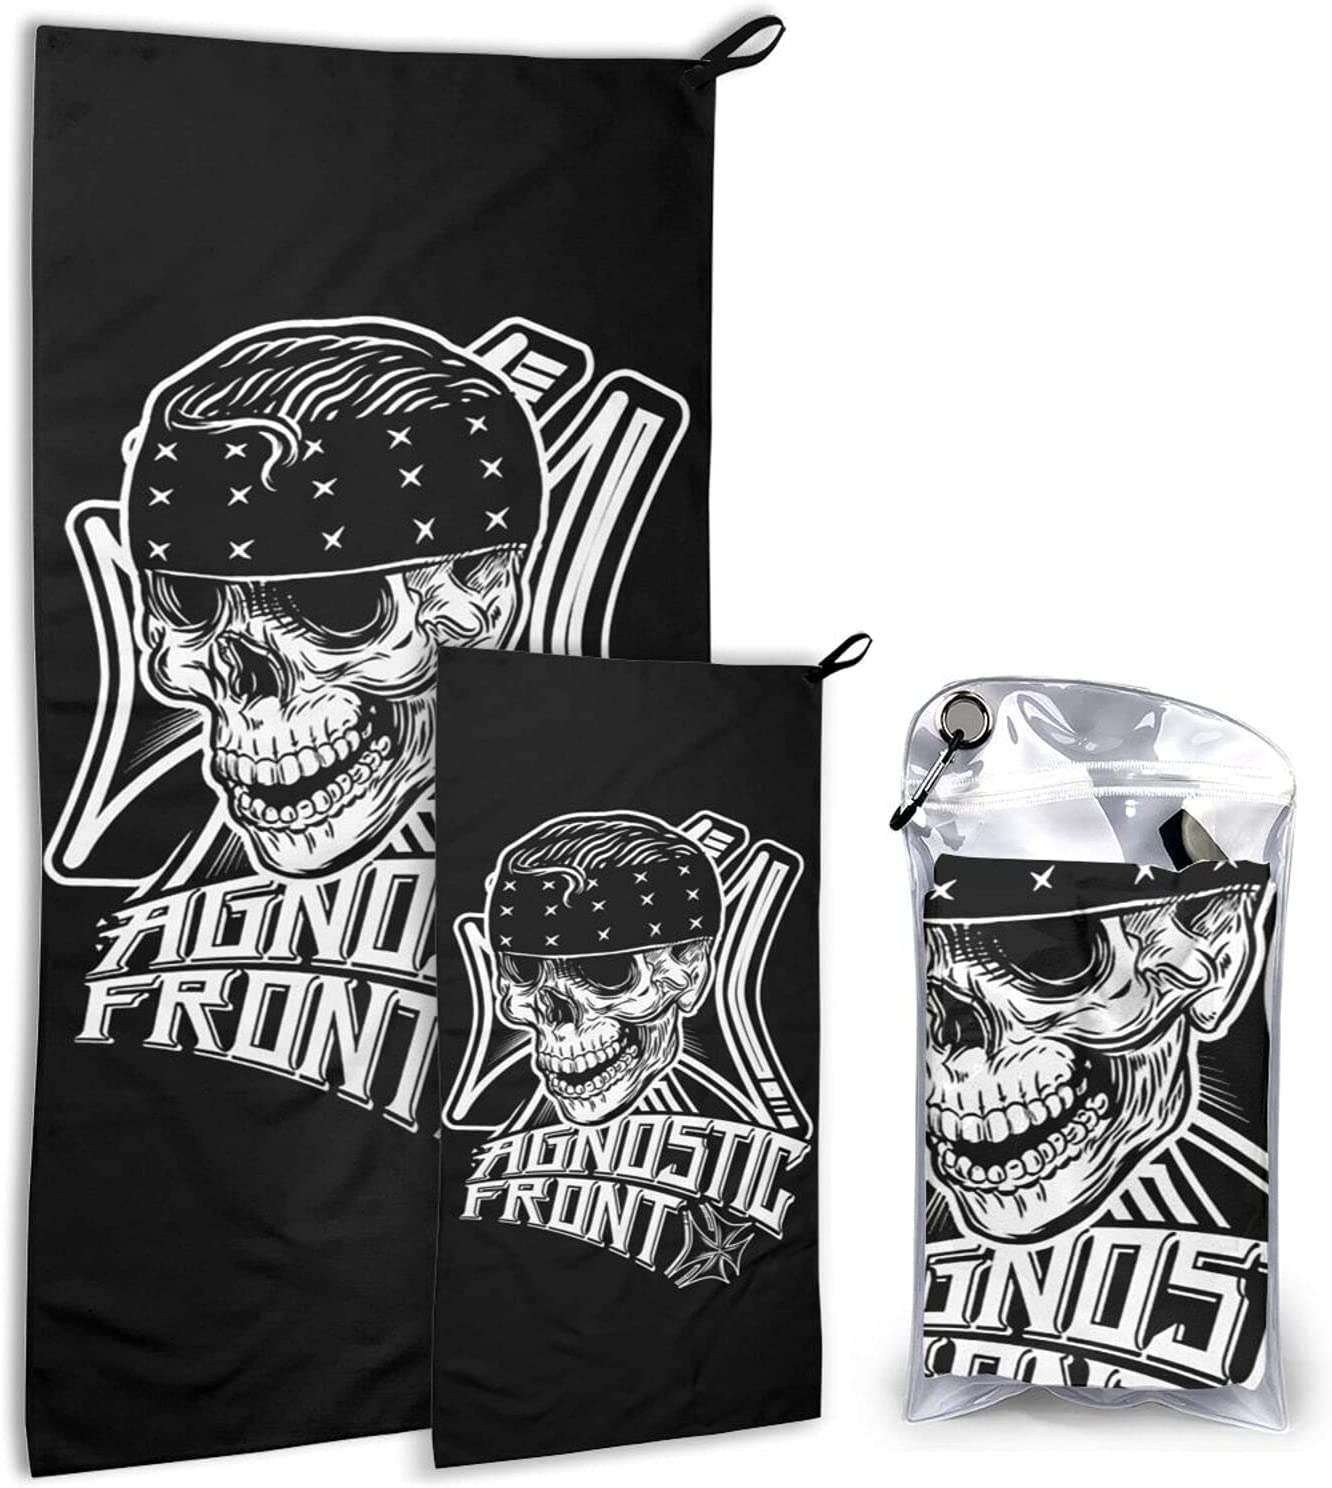 Agnostic Front Utdoors Outdoor Microfiber Popular standard Quic 2 Towel New Shipping Free Shipping Pack Set